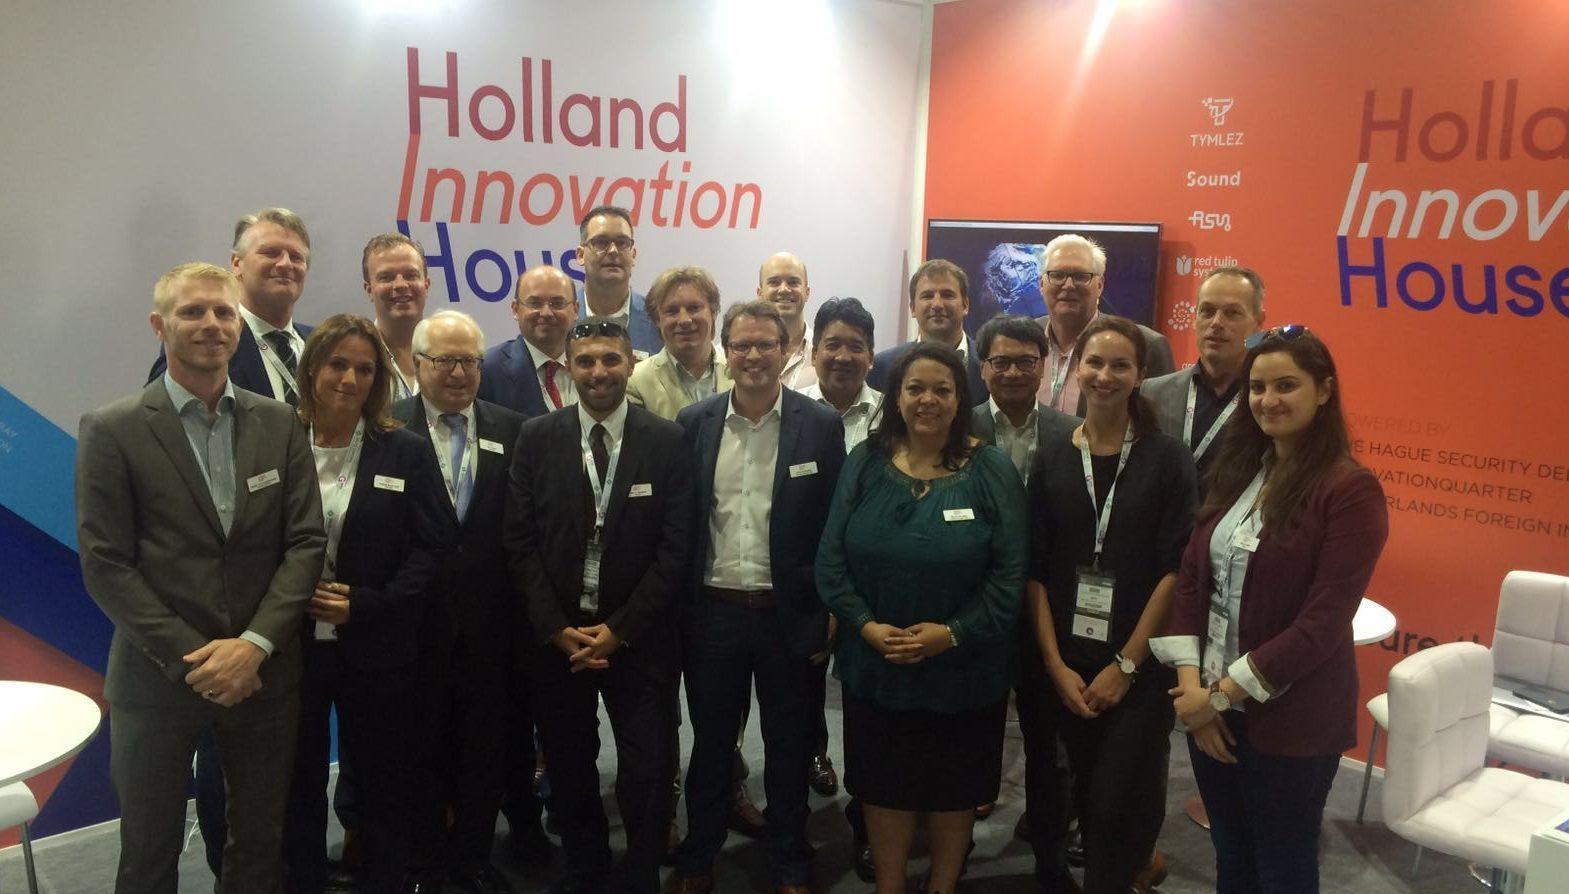 Holland Innovation House Launched at GITEX 2016